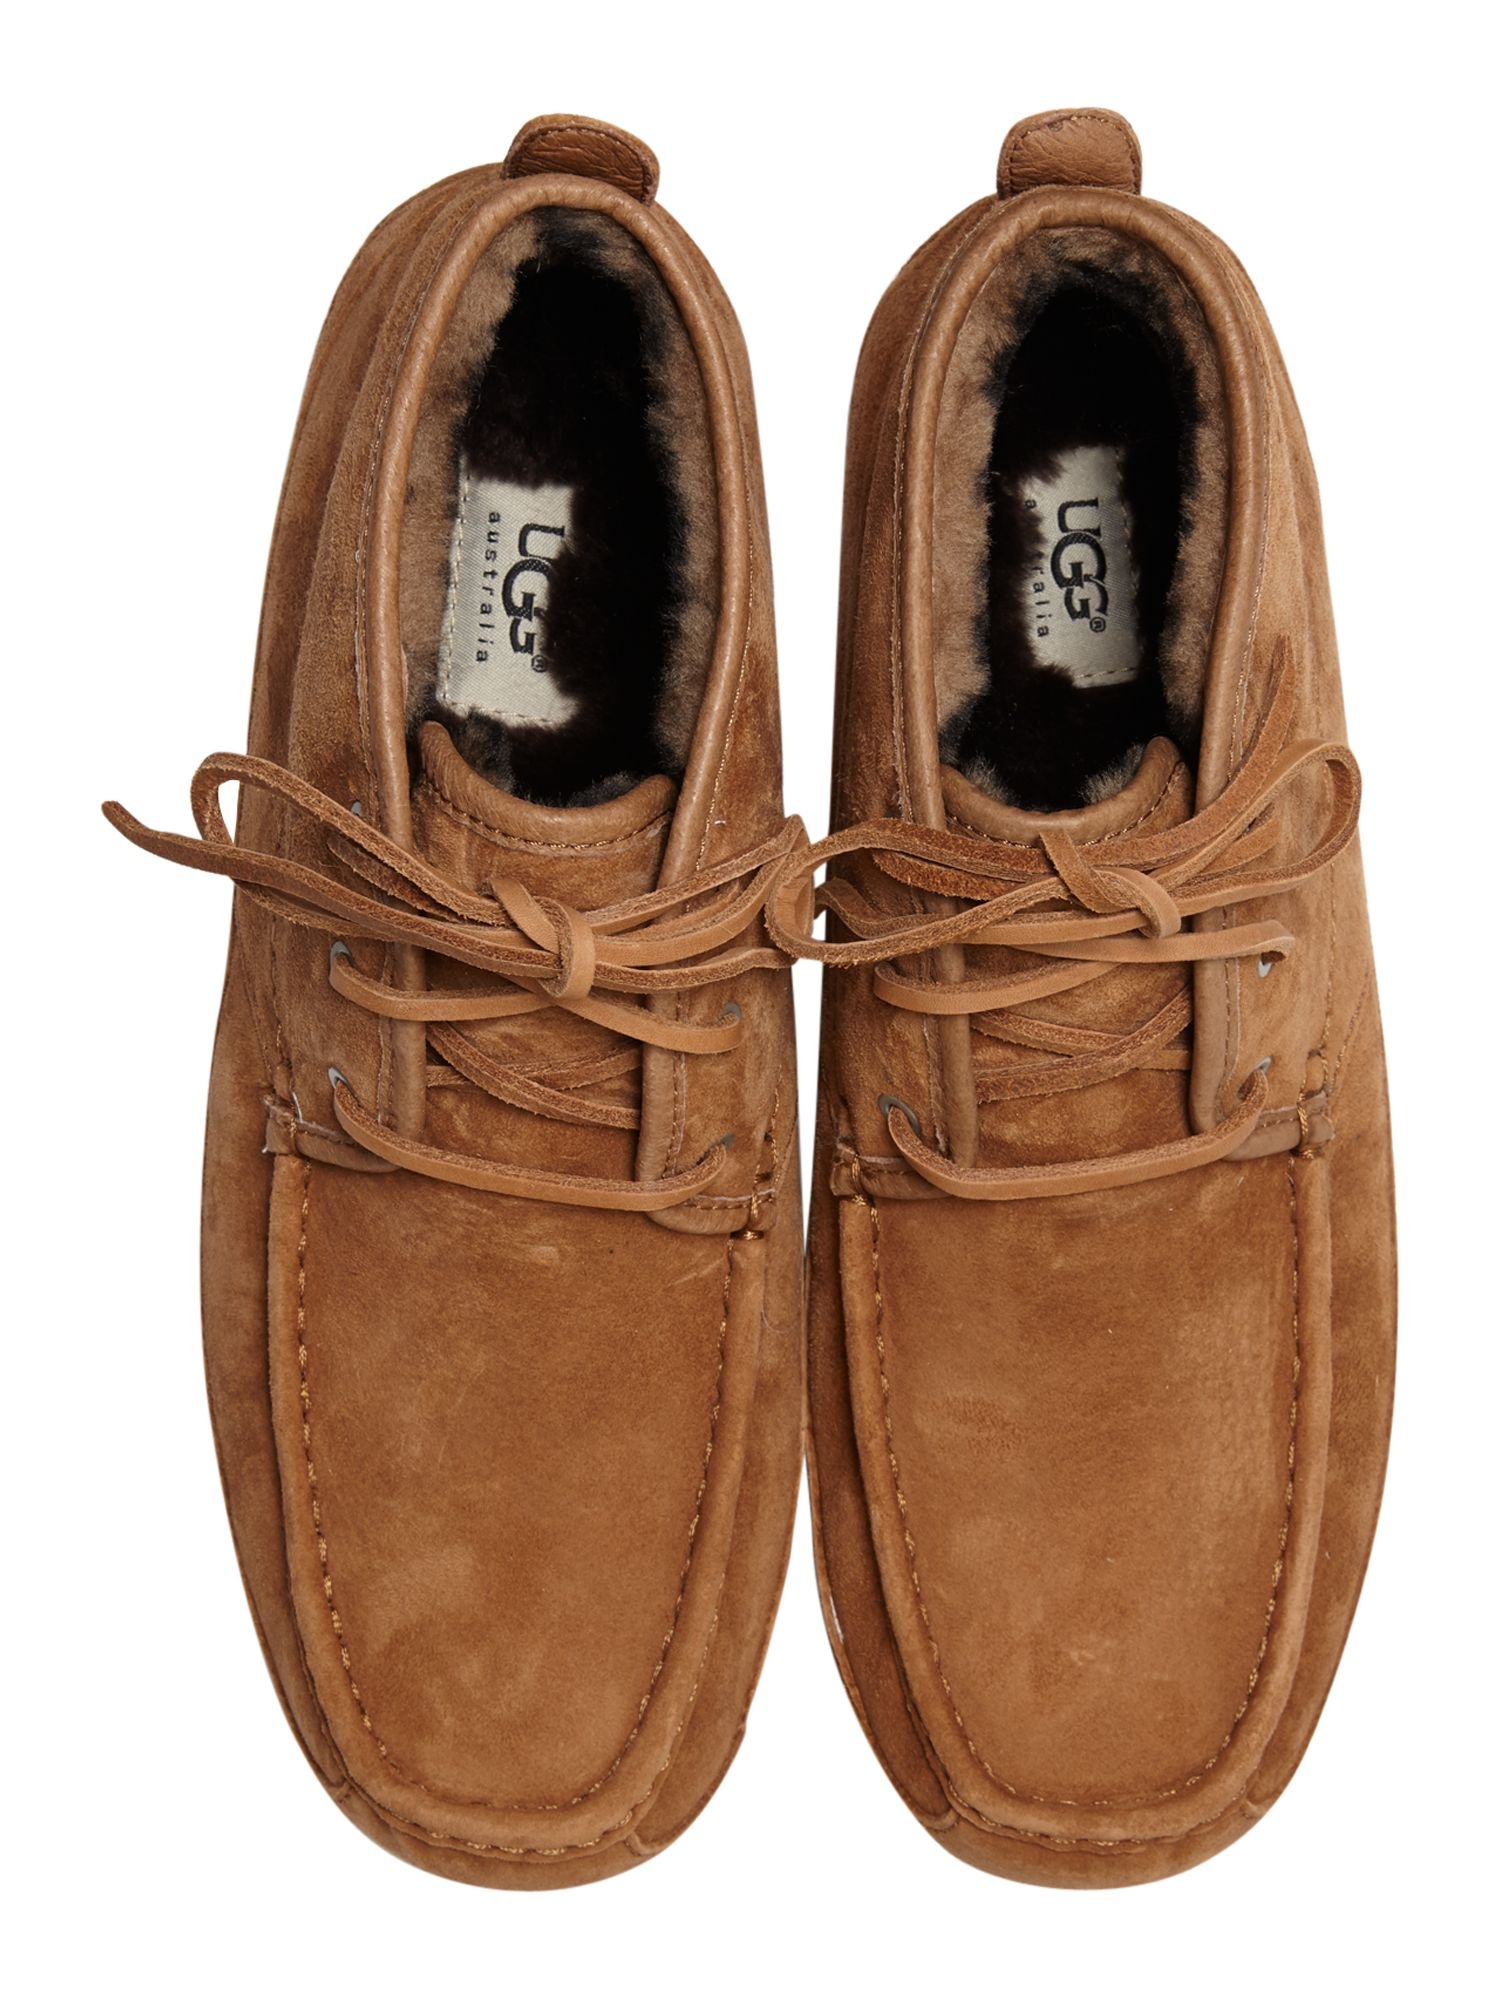 M Lyle moccasin bootie slipper